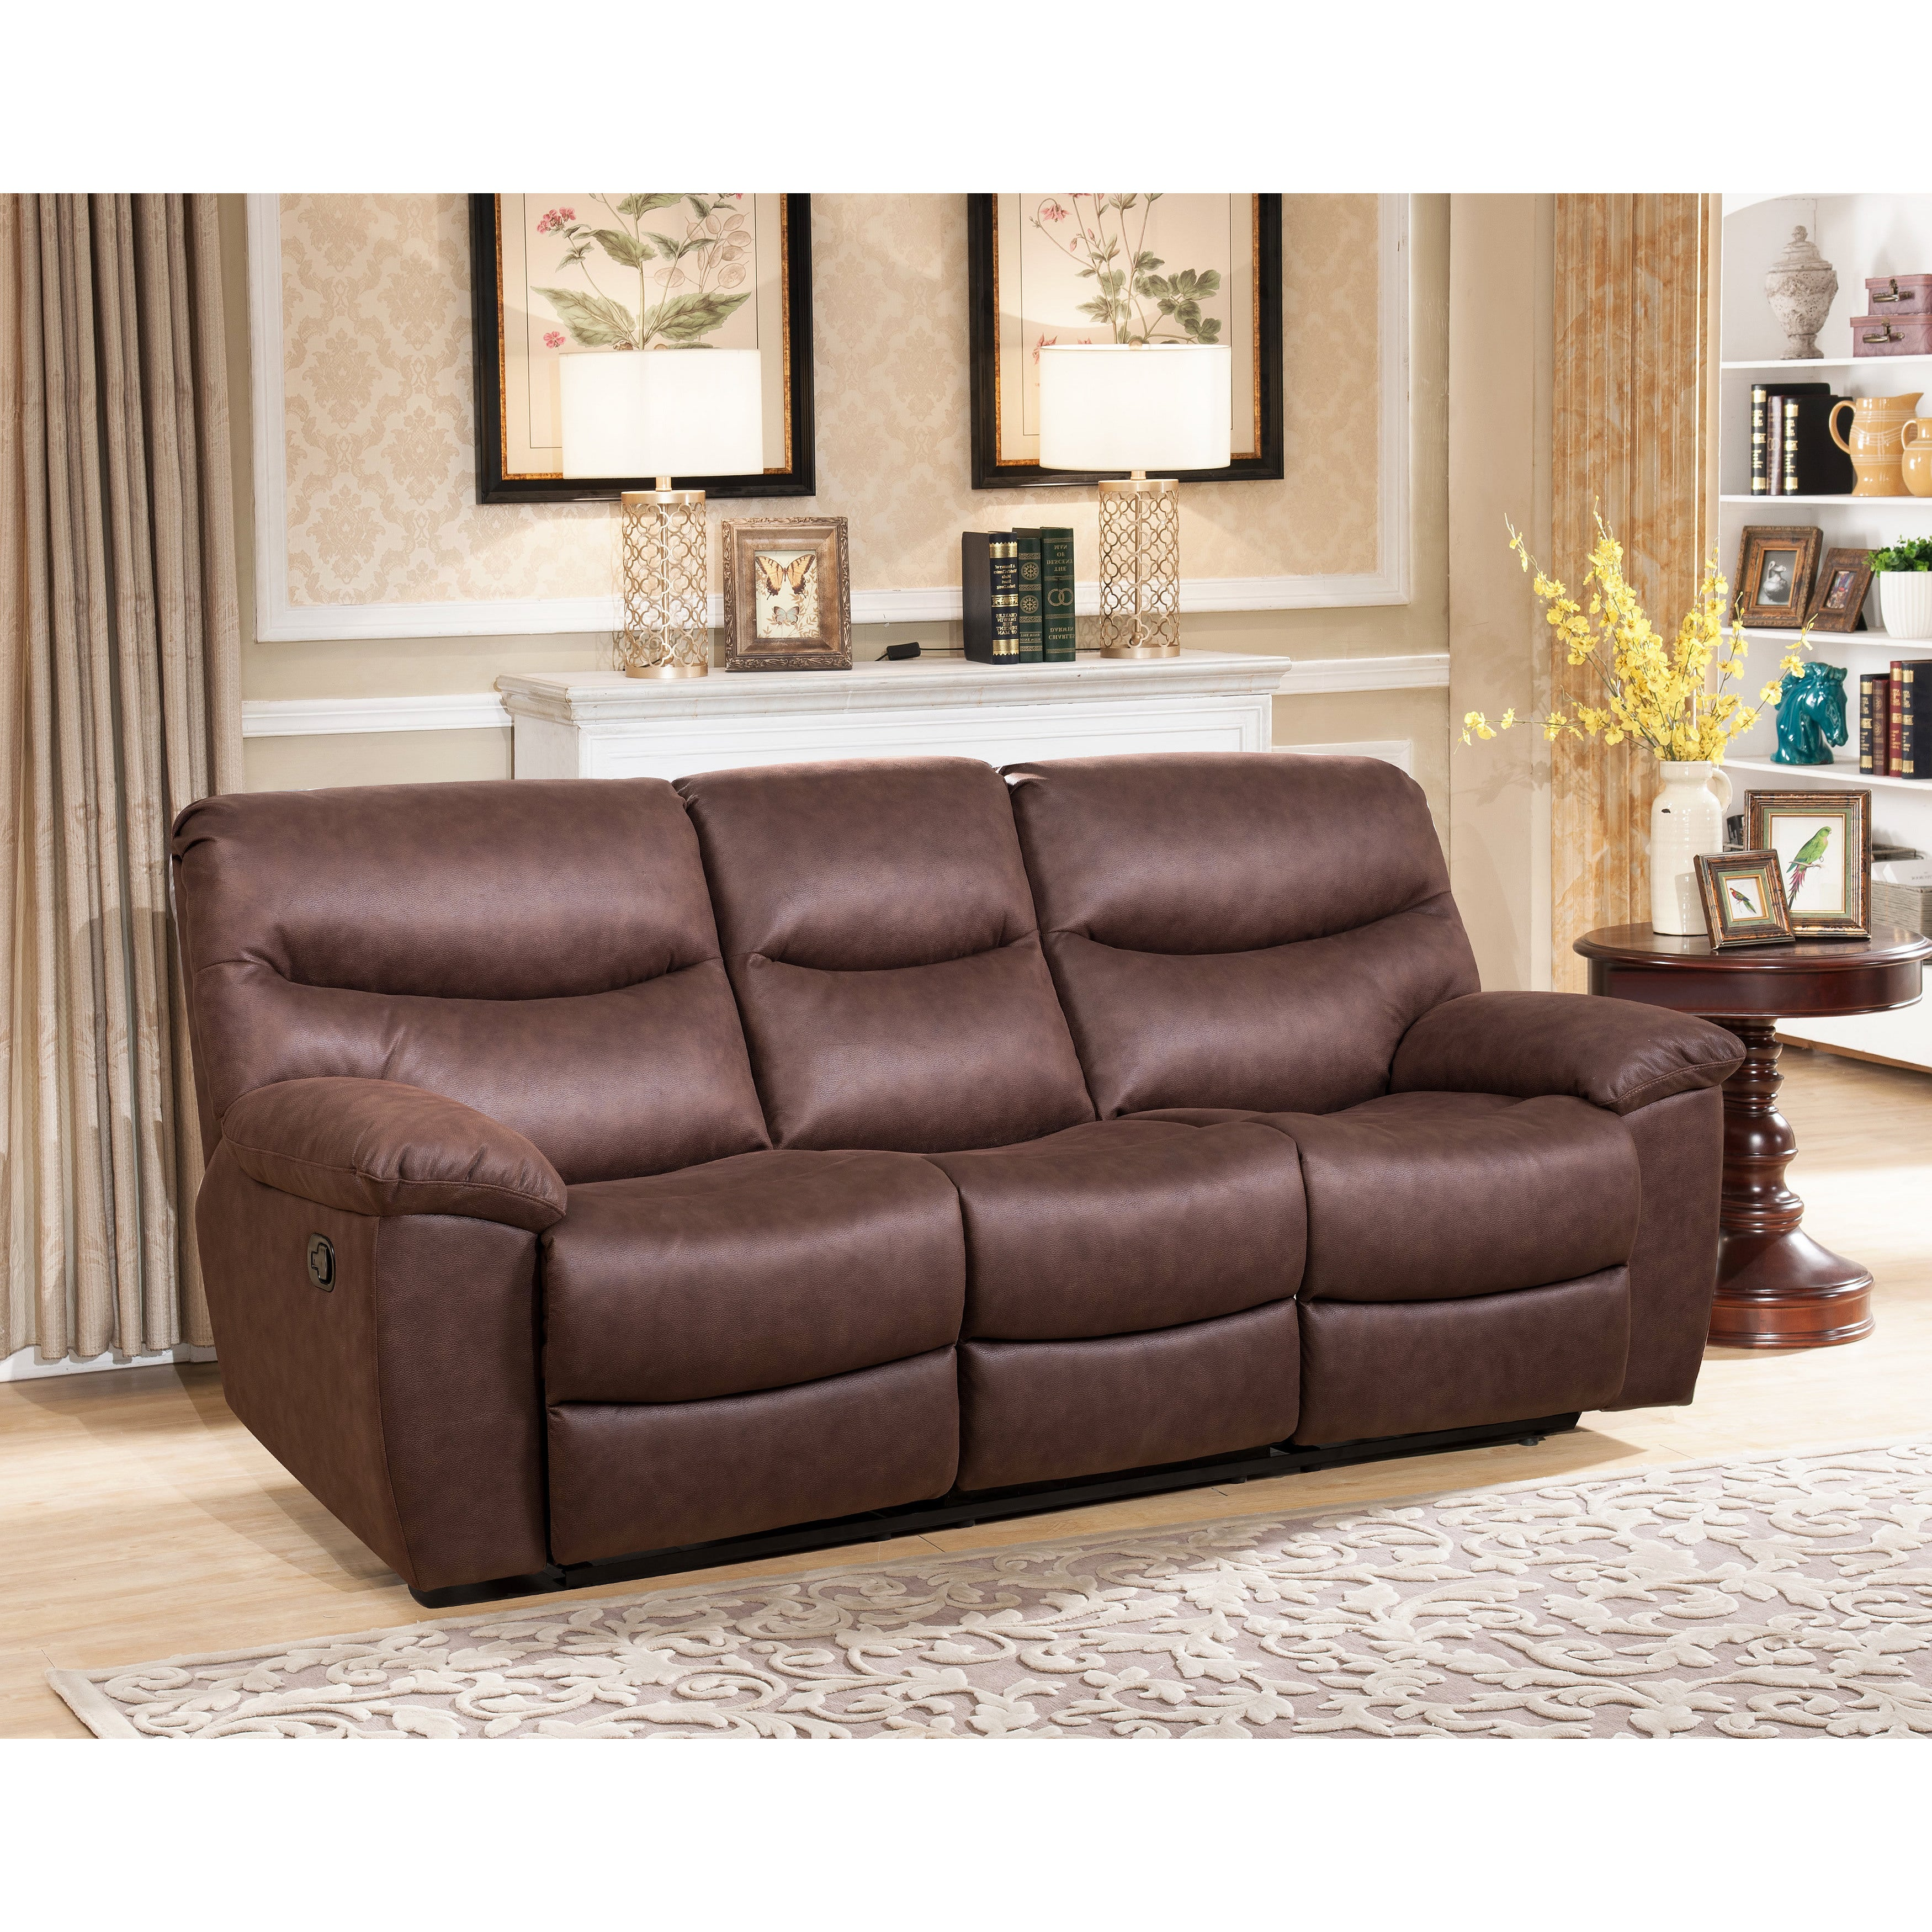 Abbyson Tyler Fabric Reclining Sofa With Drop Down Console Free  ~ Rooms To Go Reclining Sofa